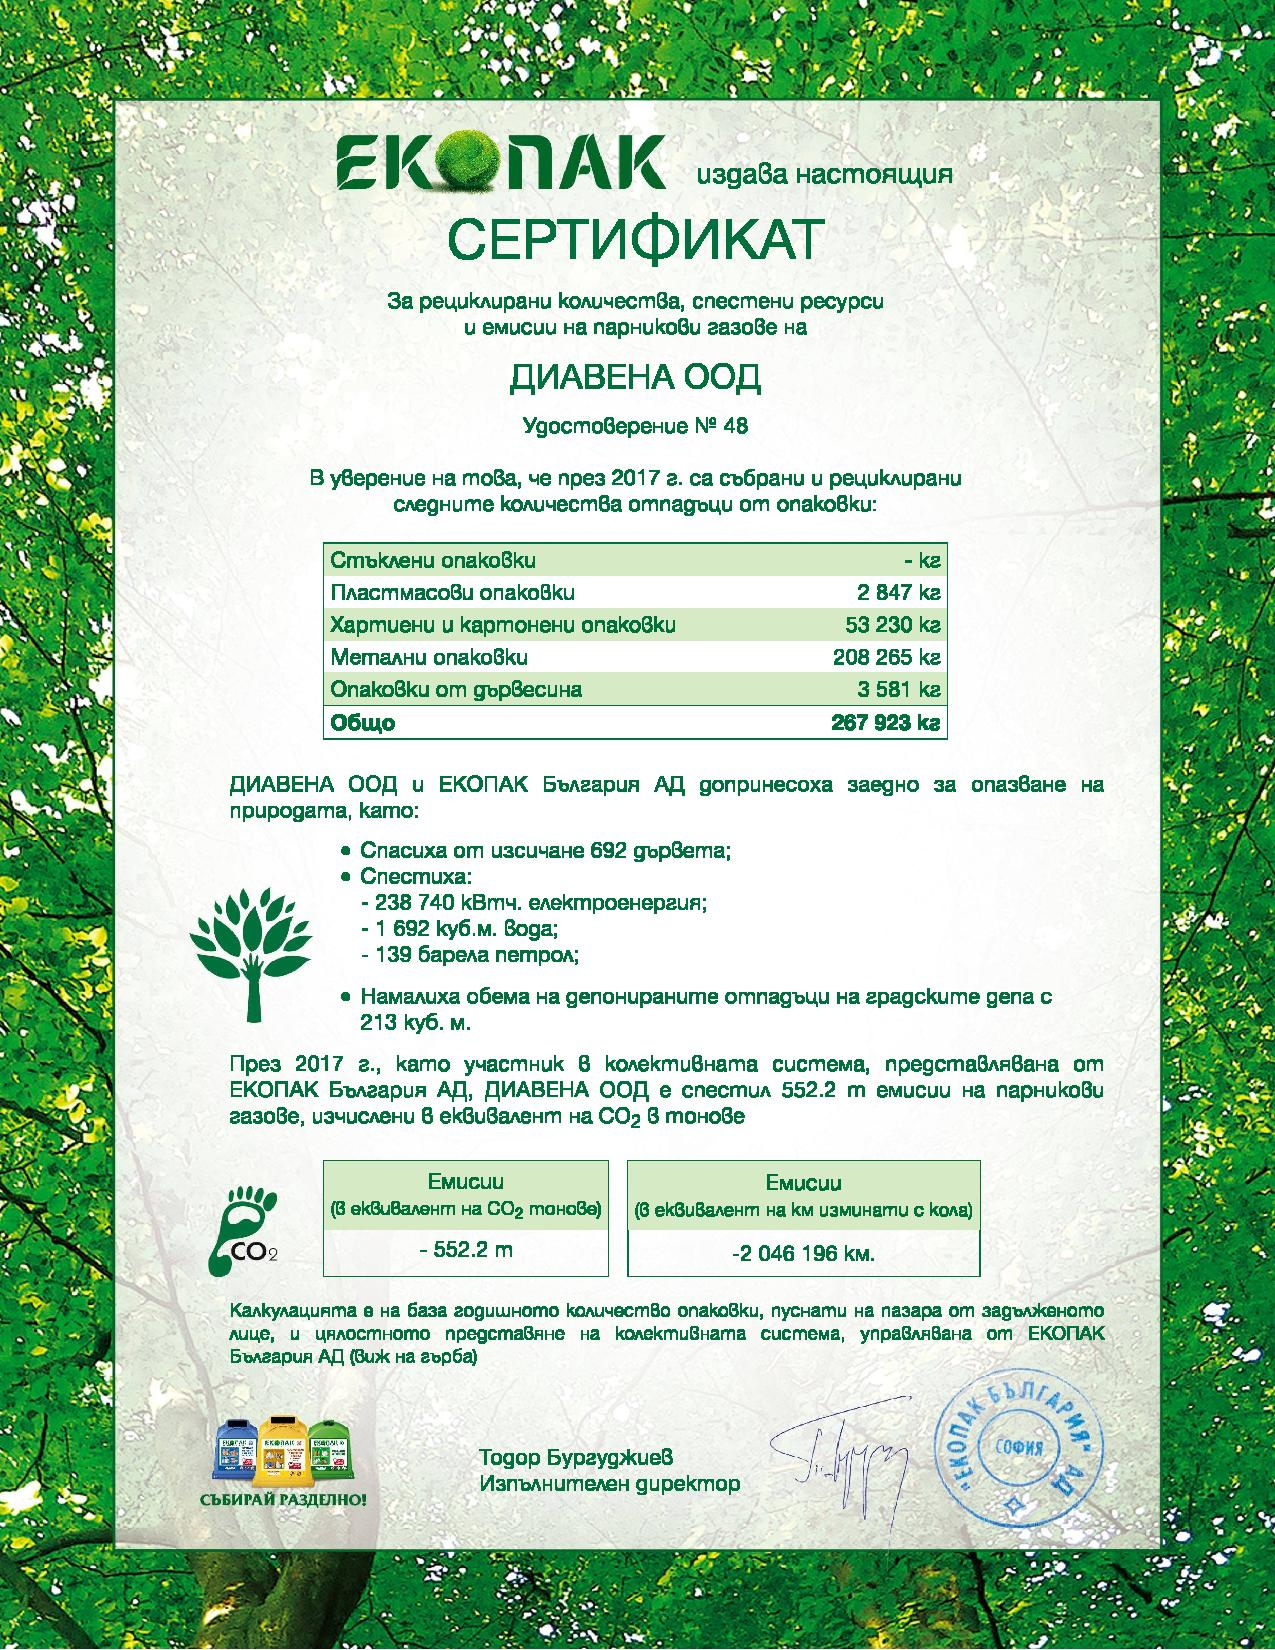 Ecopack certificate for 2017